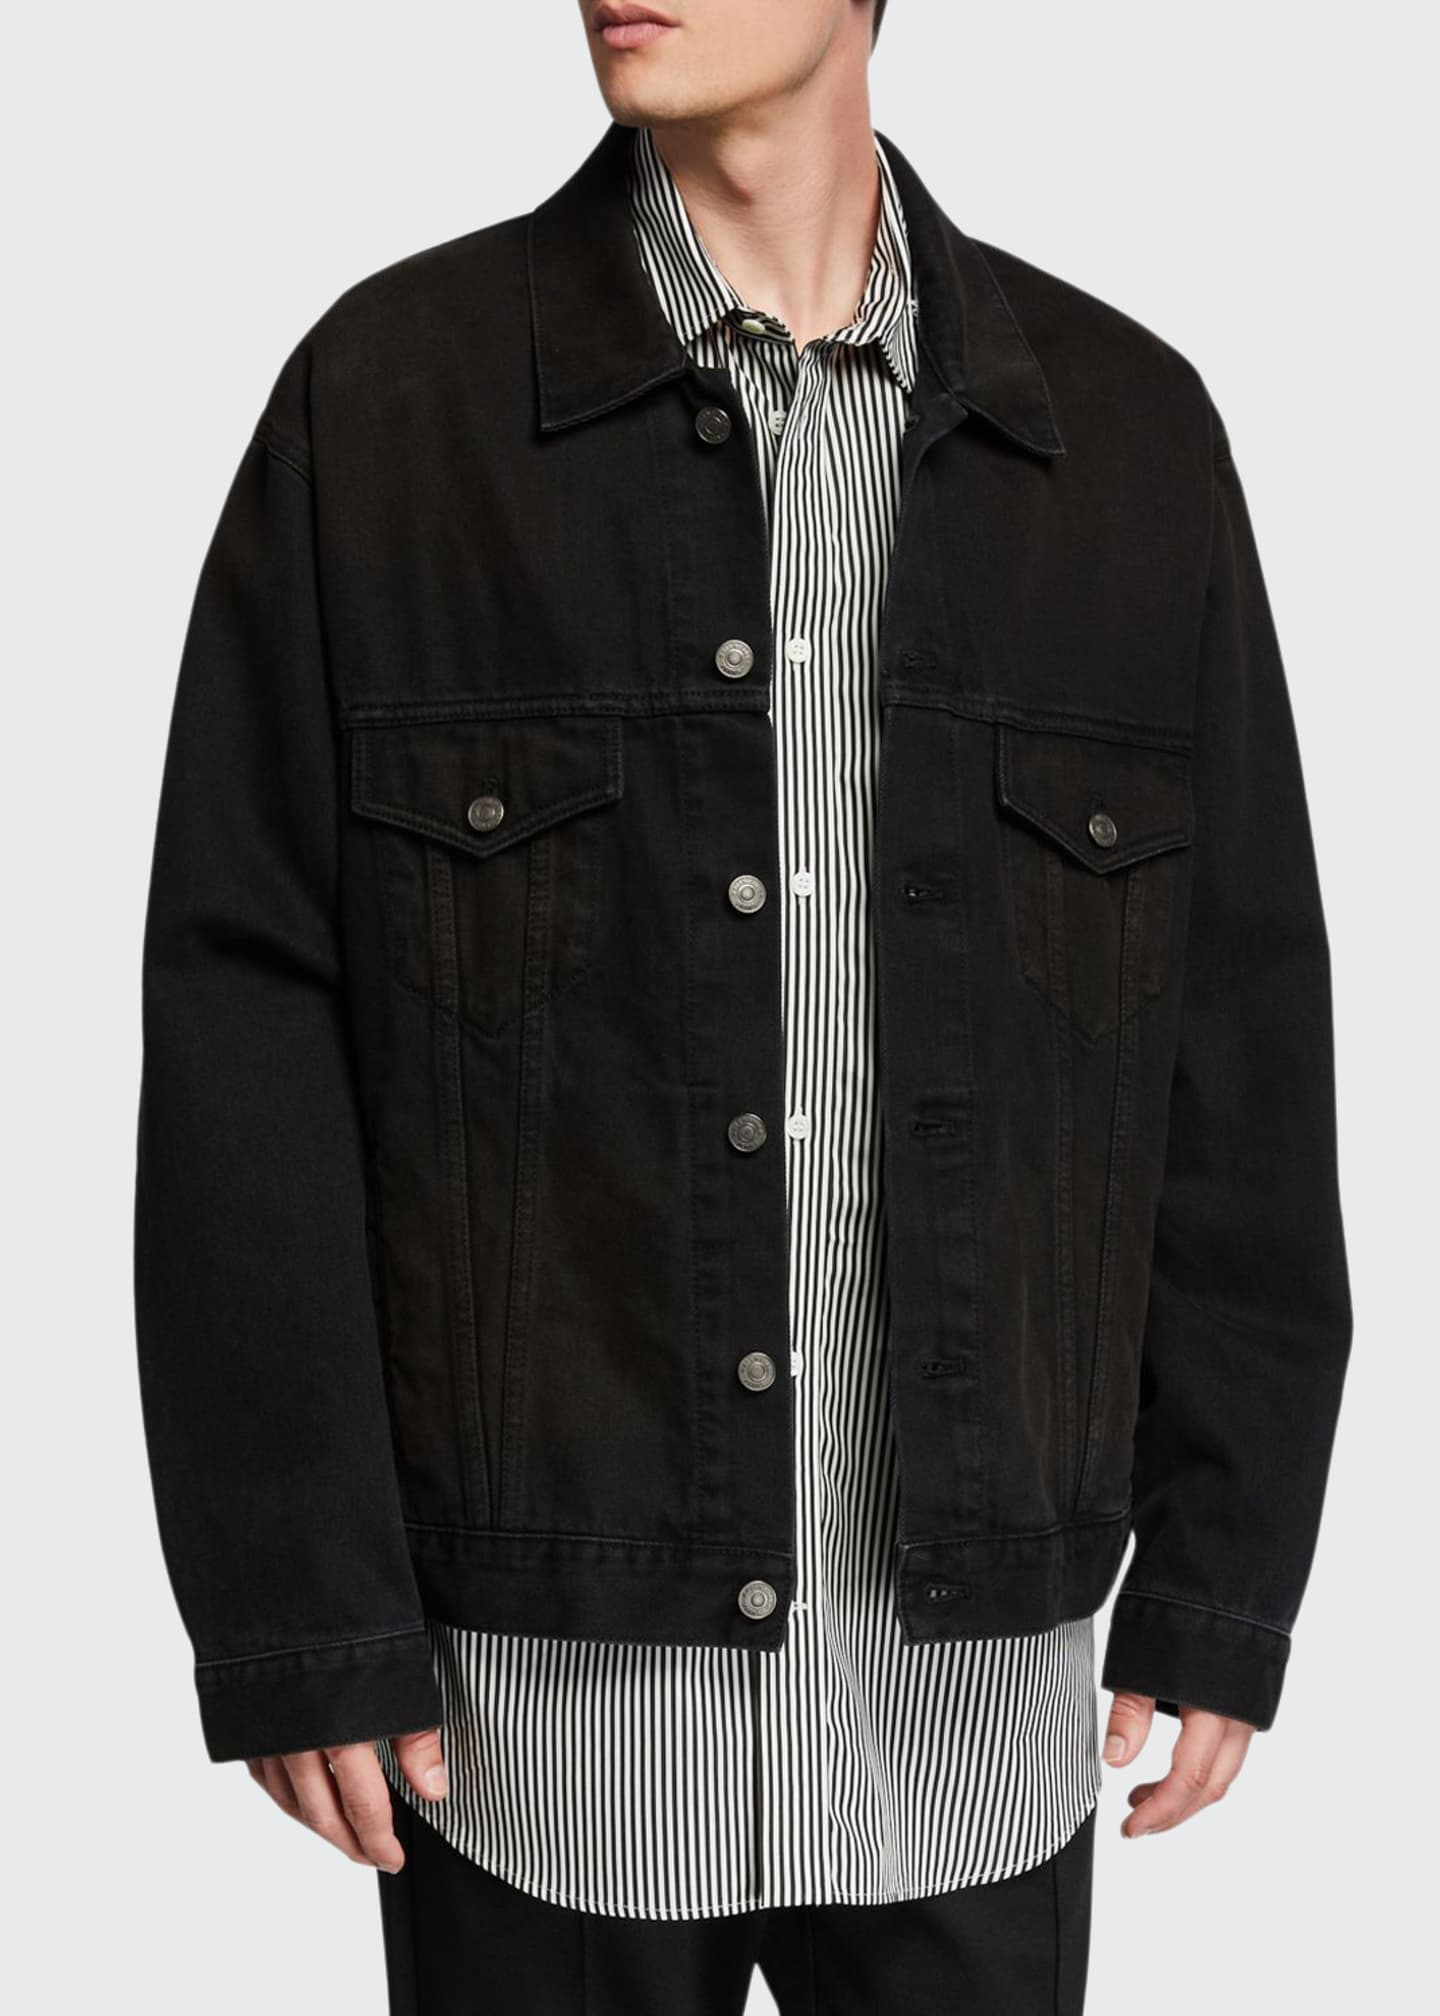 Balenciaga Men's Oversized Washed Denim Jacket with Lipstick